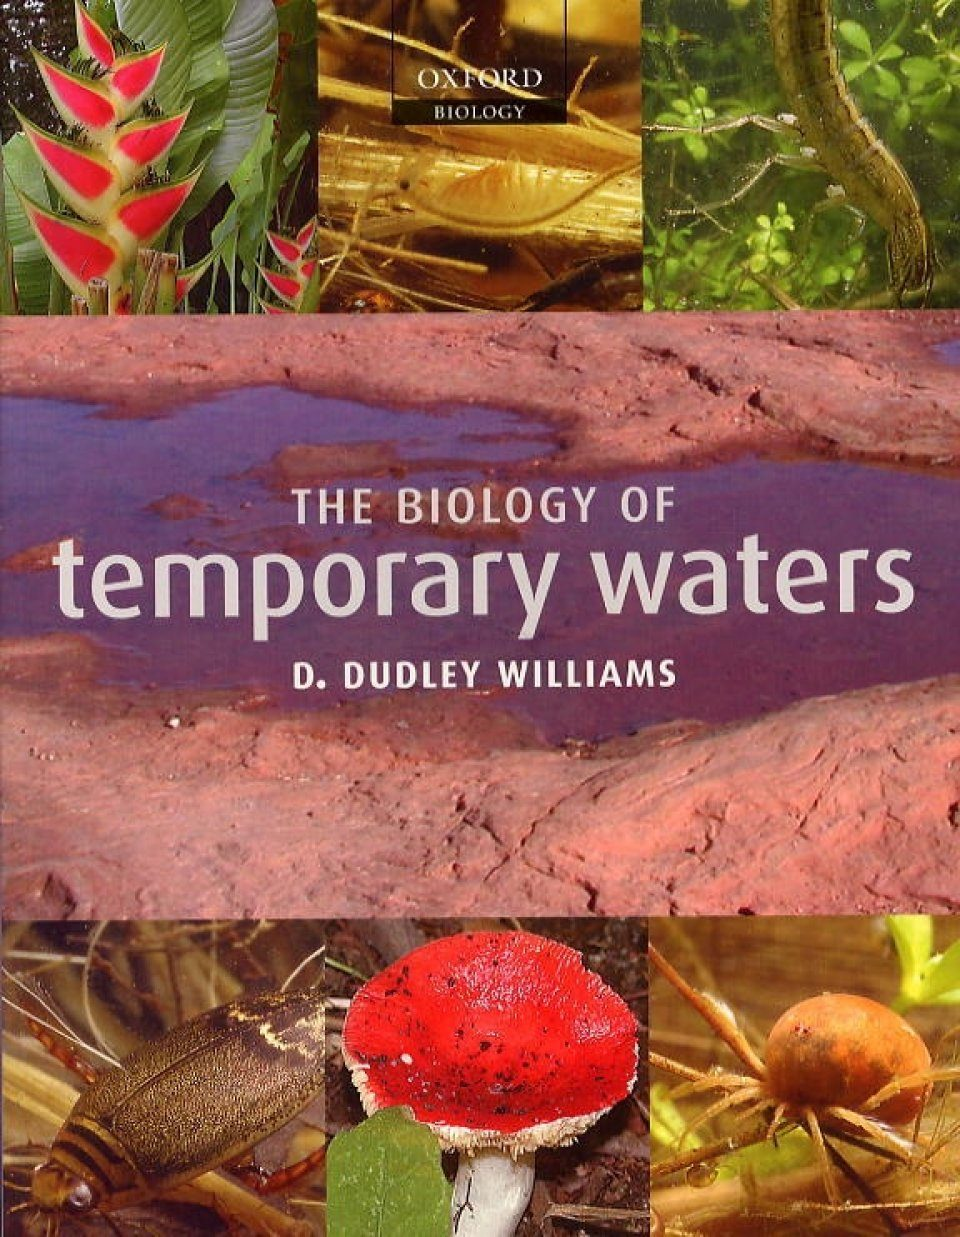 The Biology of Temporary Waters